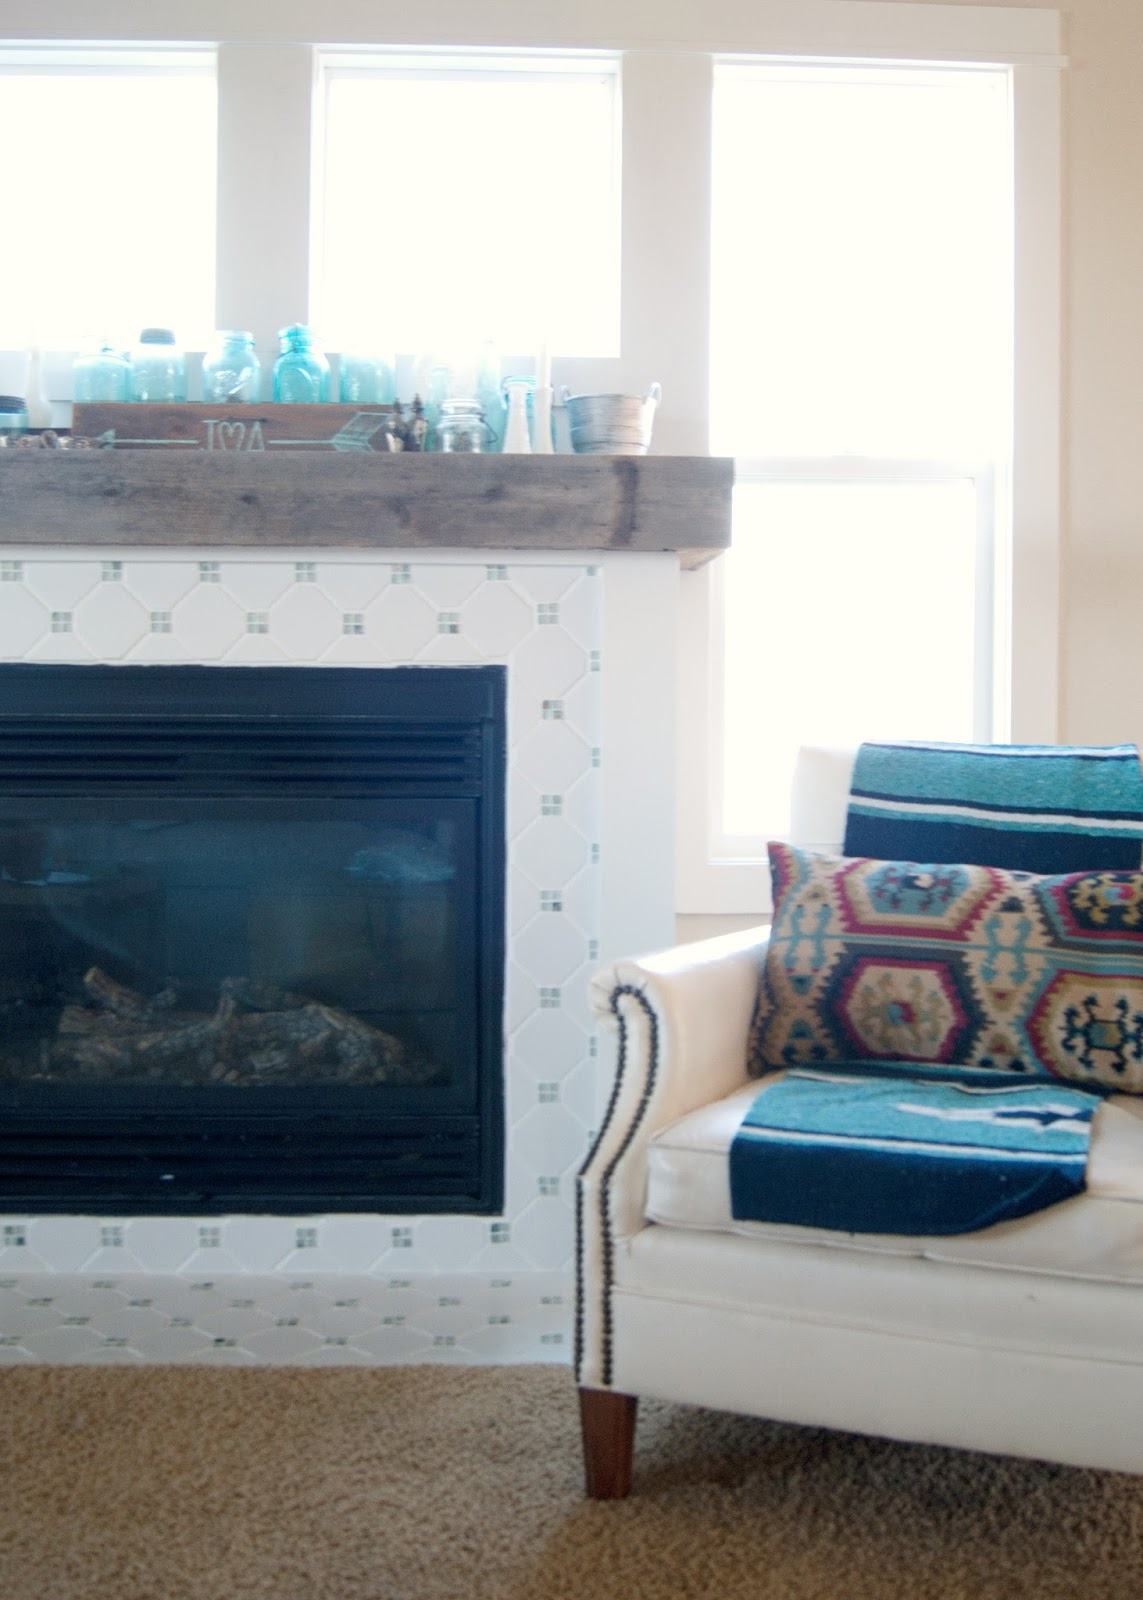 Fireplace Makeover - DIY Fireplace makeover using reclaimed and salvaged materials - octagon & dot tile, reclaimed wood,  white paint, planking - all for under $60! Before and After and links to all the steps!